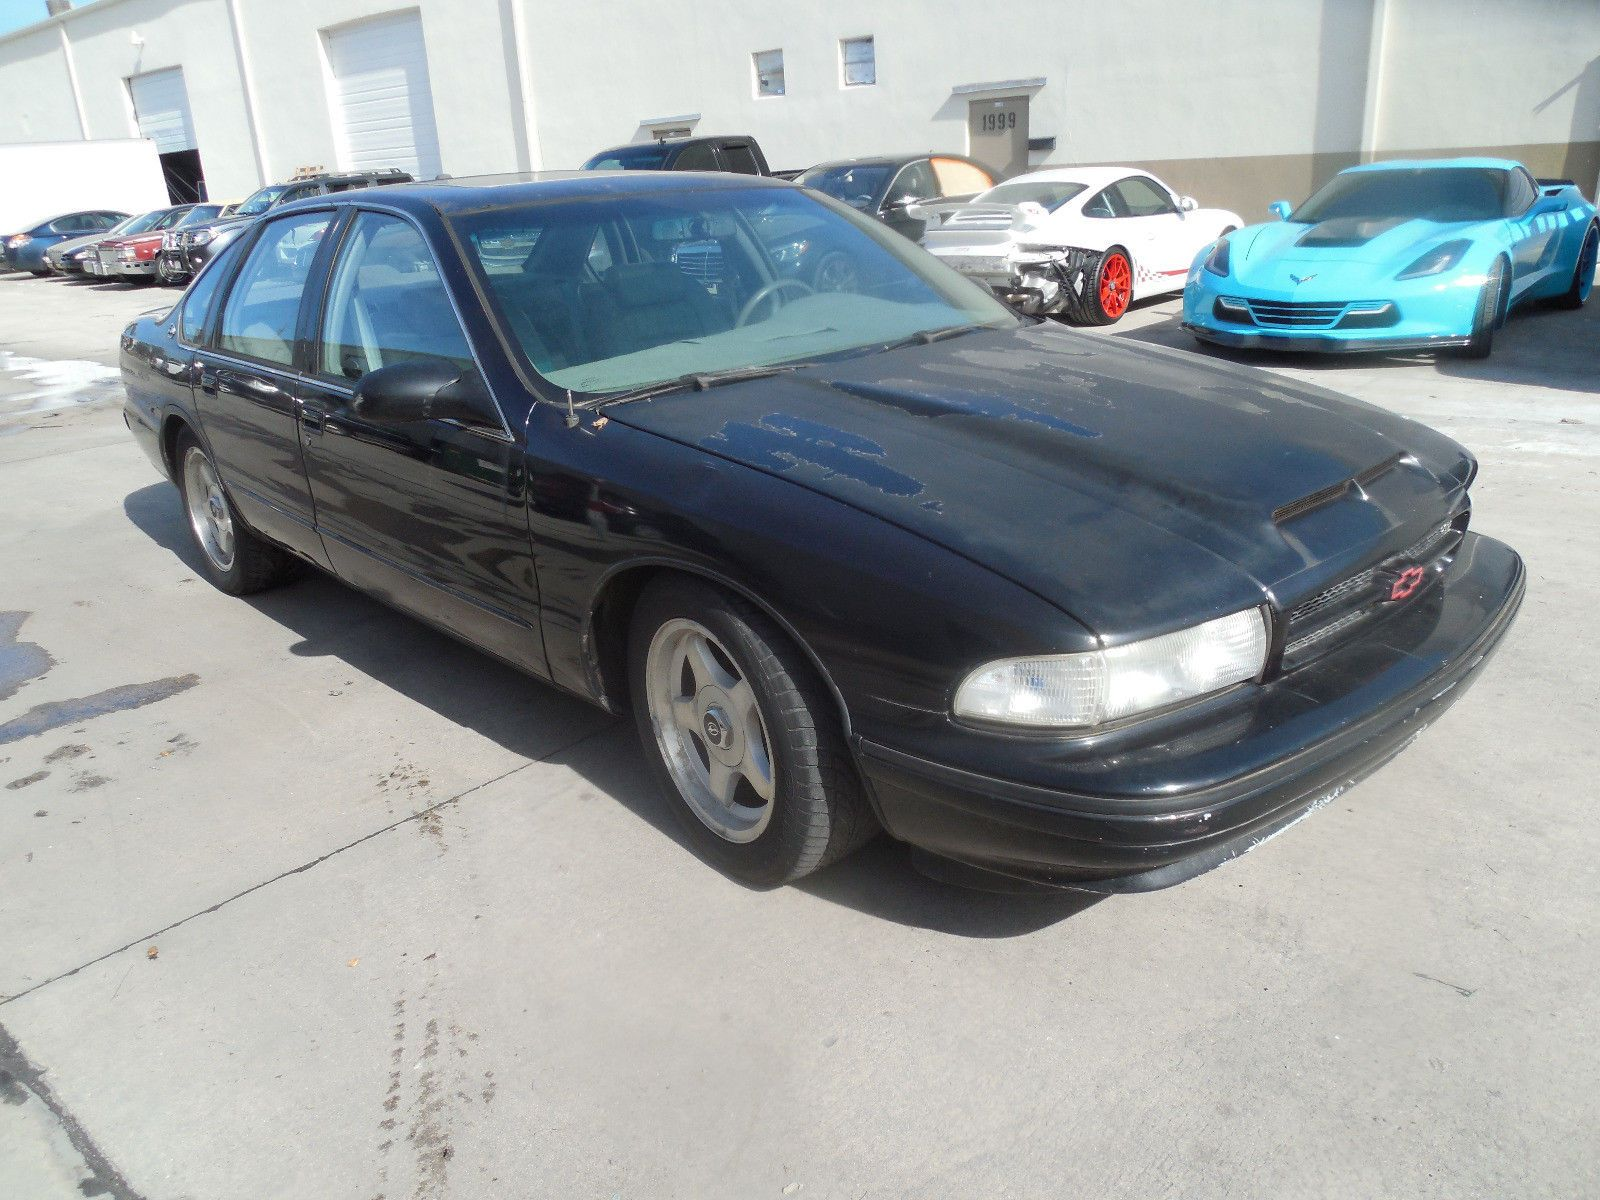 1996 Chevrolet Impala SS with no title